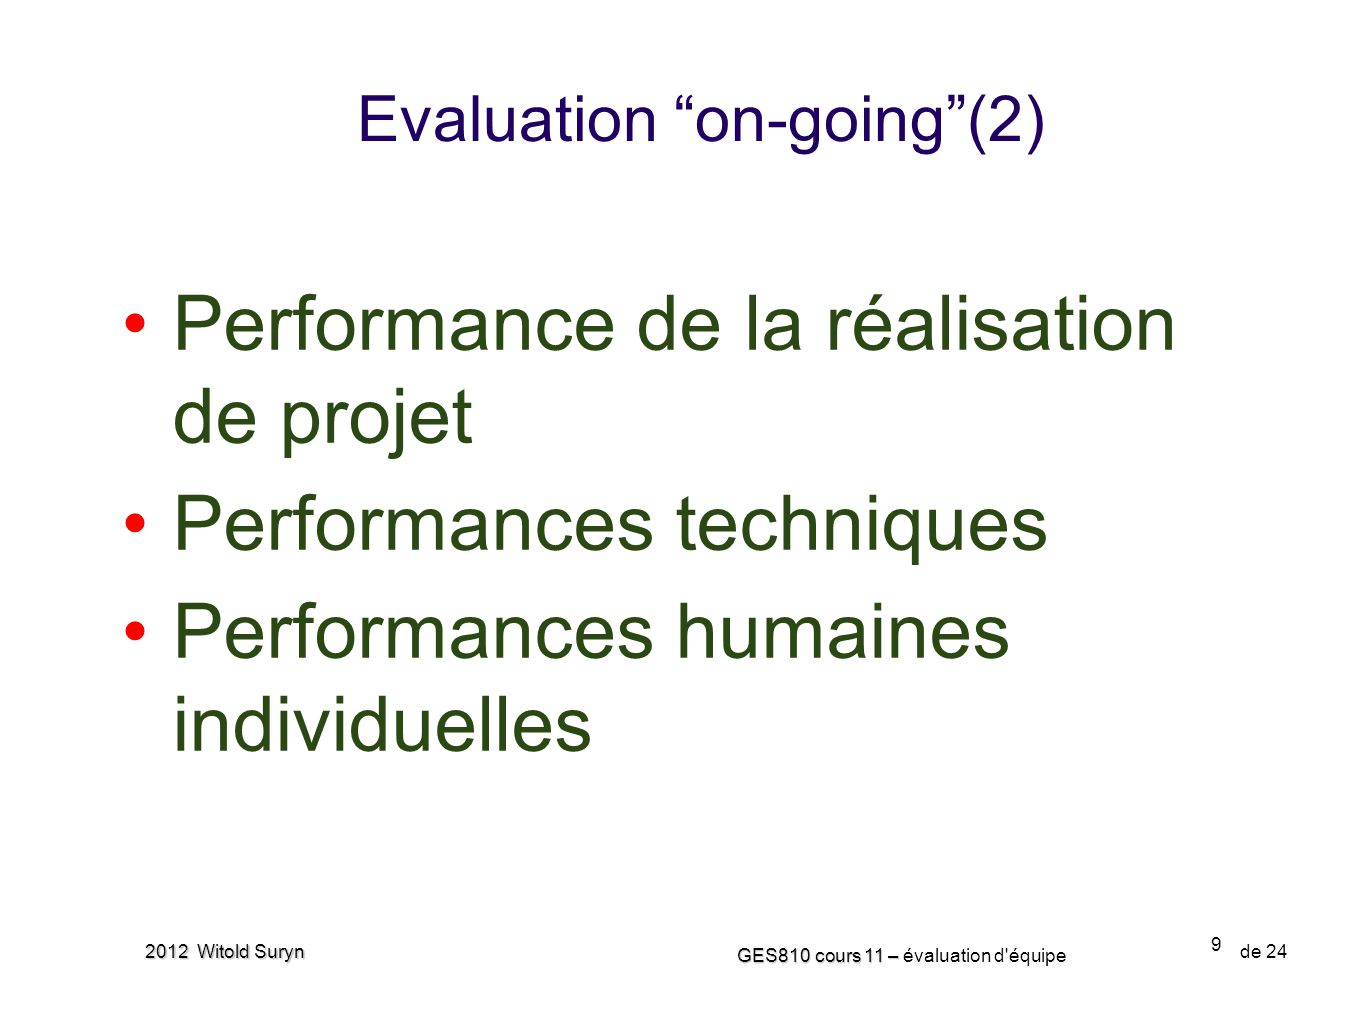 Evaluation on-going (2)